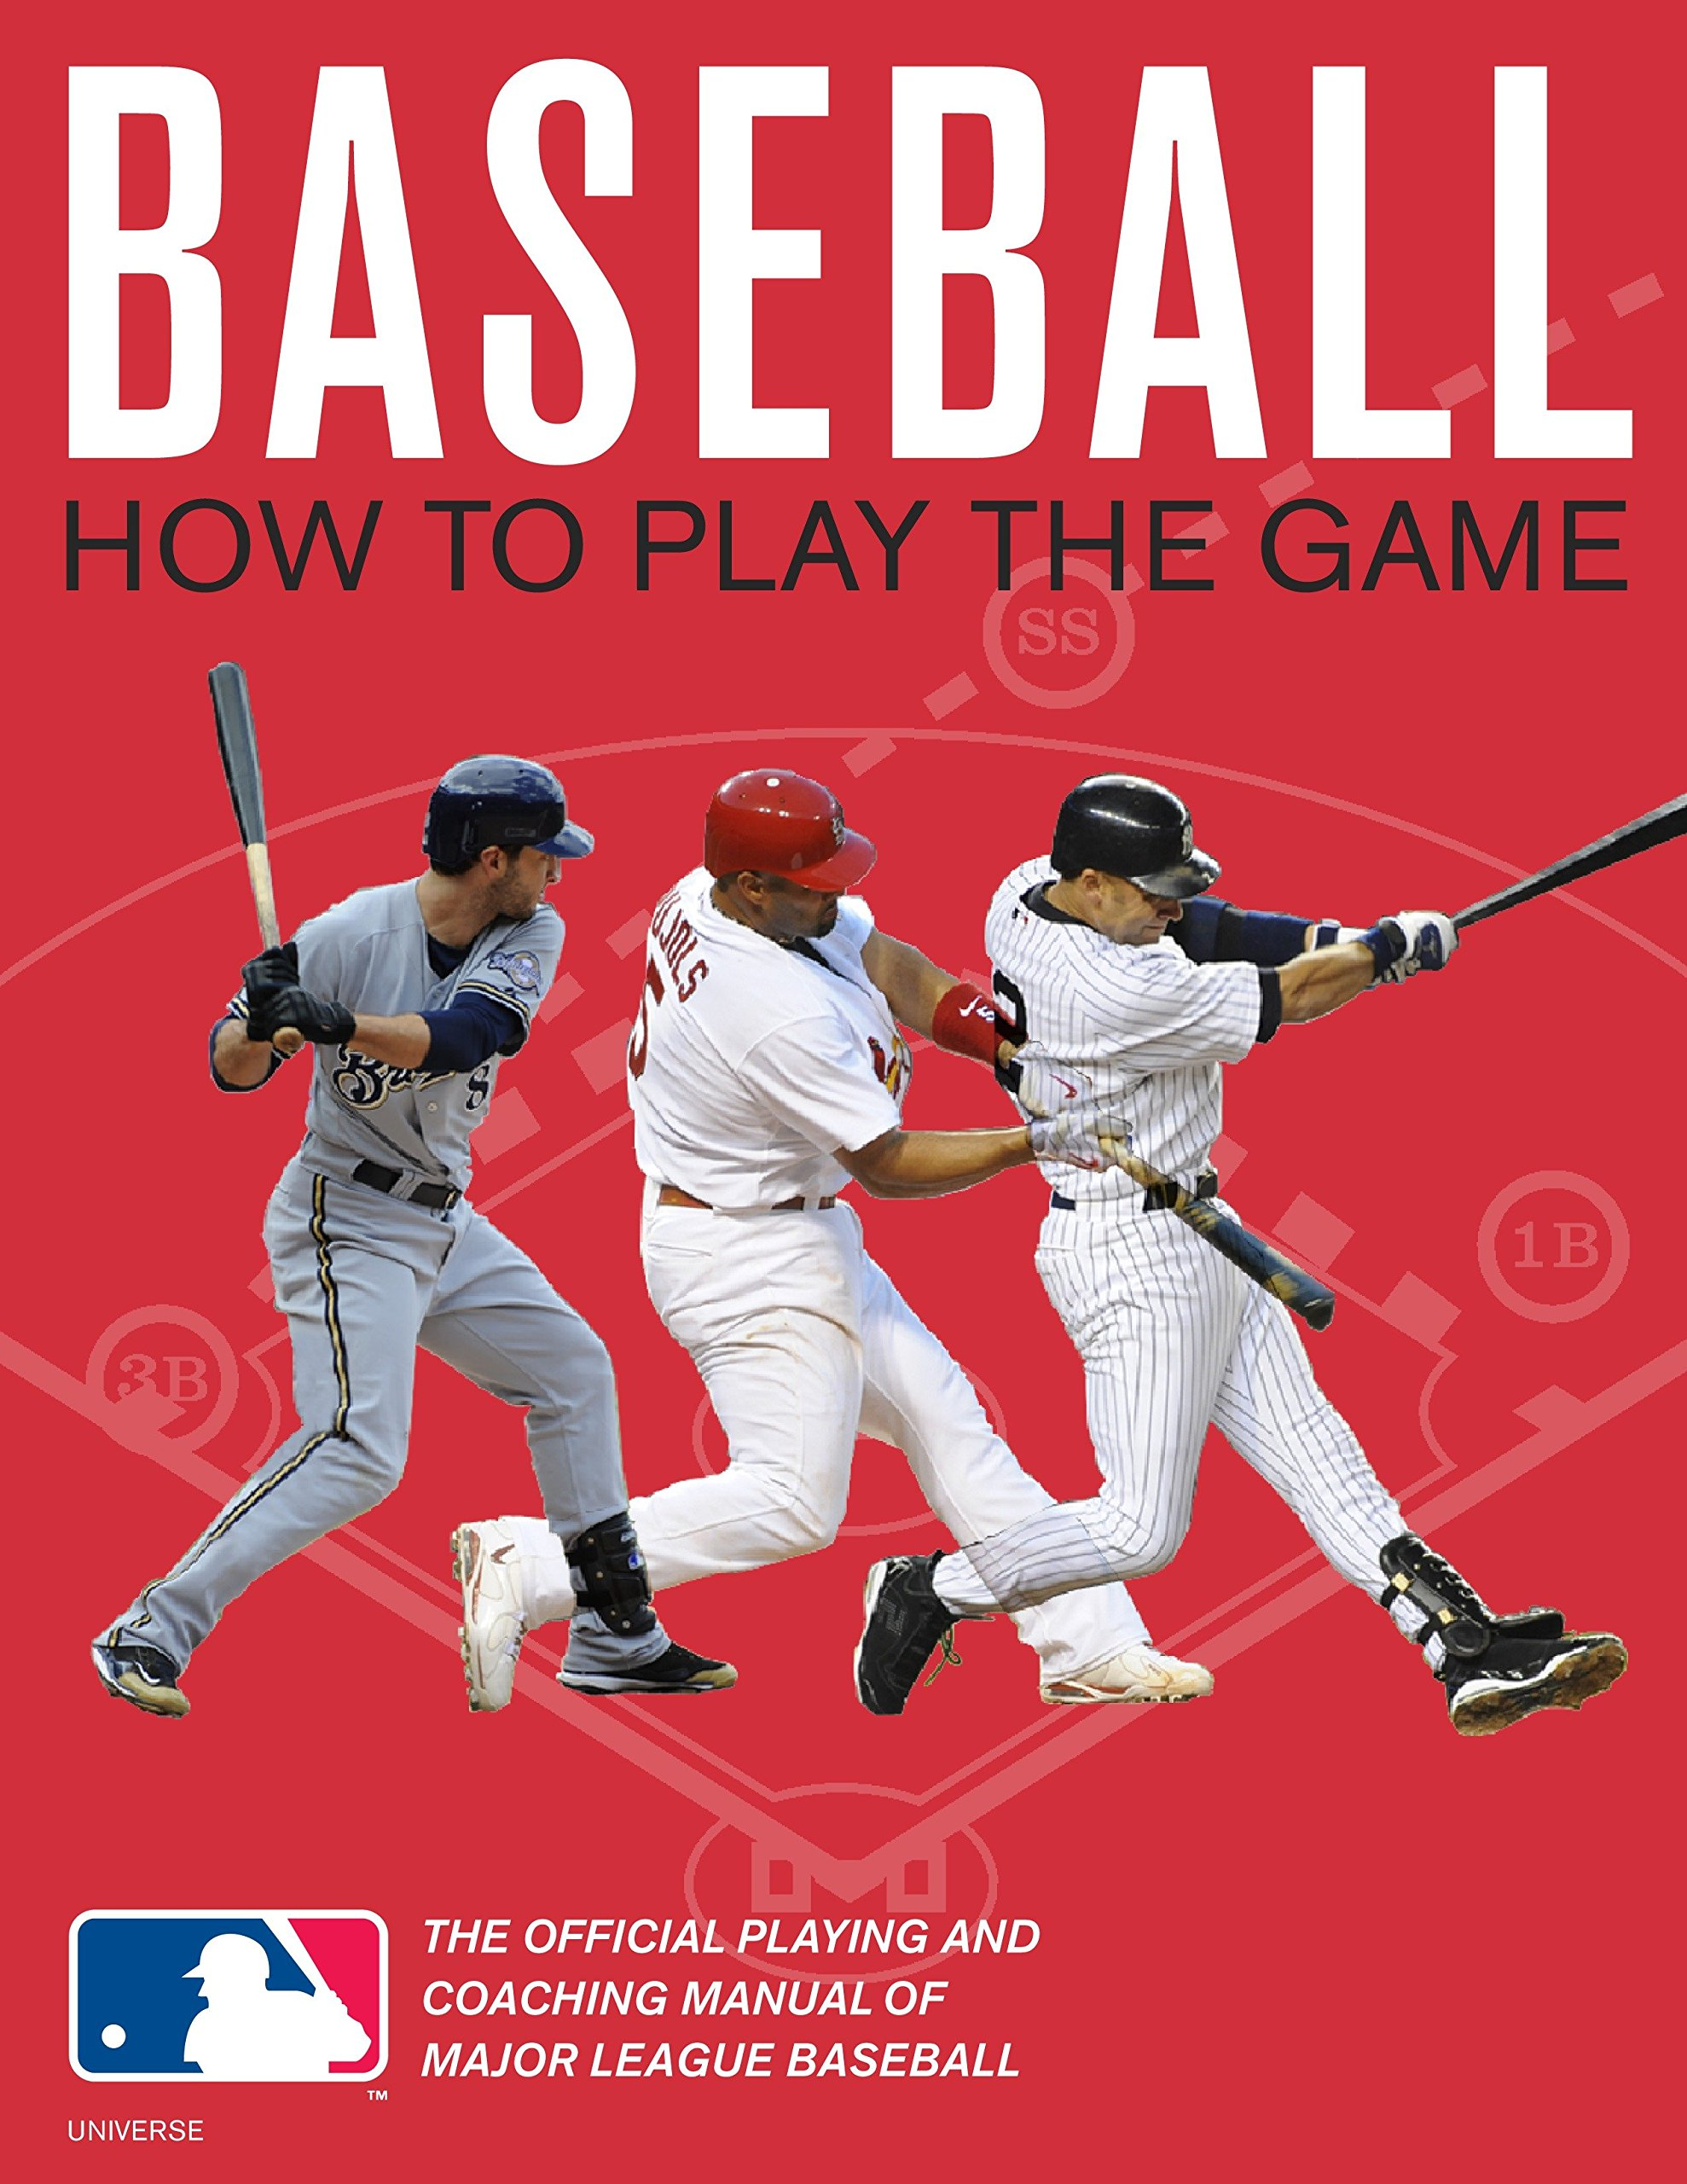 Image OfBaseball: How To Play The Game: The Official Playing And Coaching Manual Of Major League Baseball